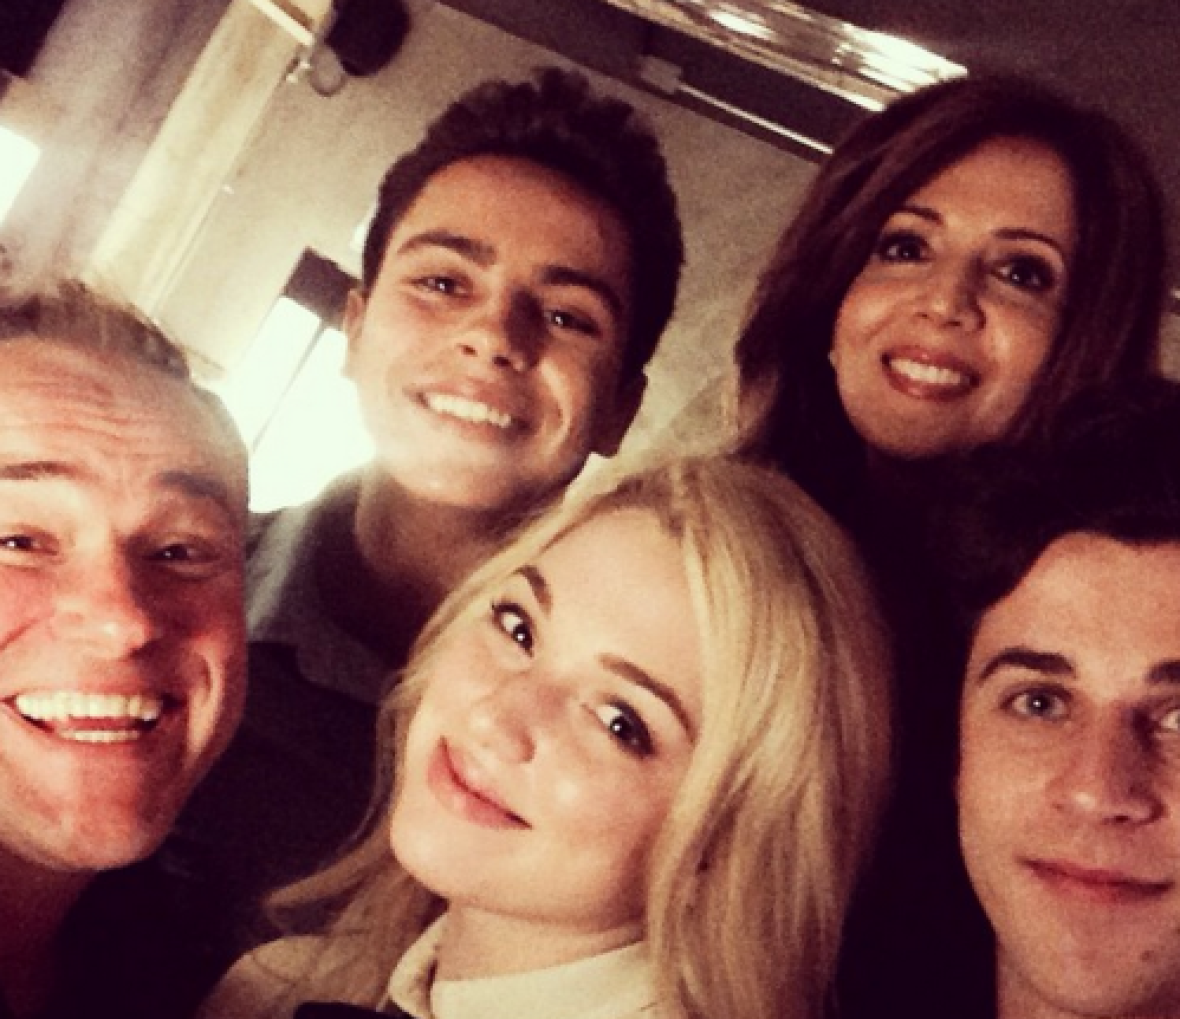 wizards of waverly place reunion dinner